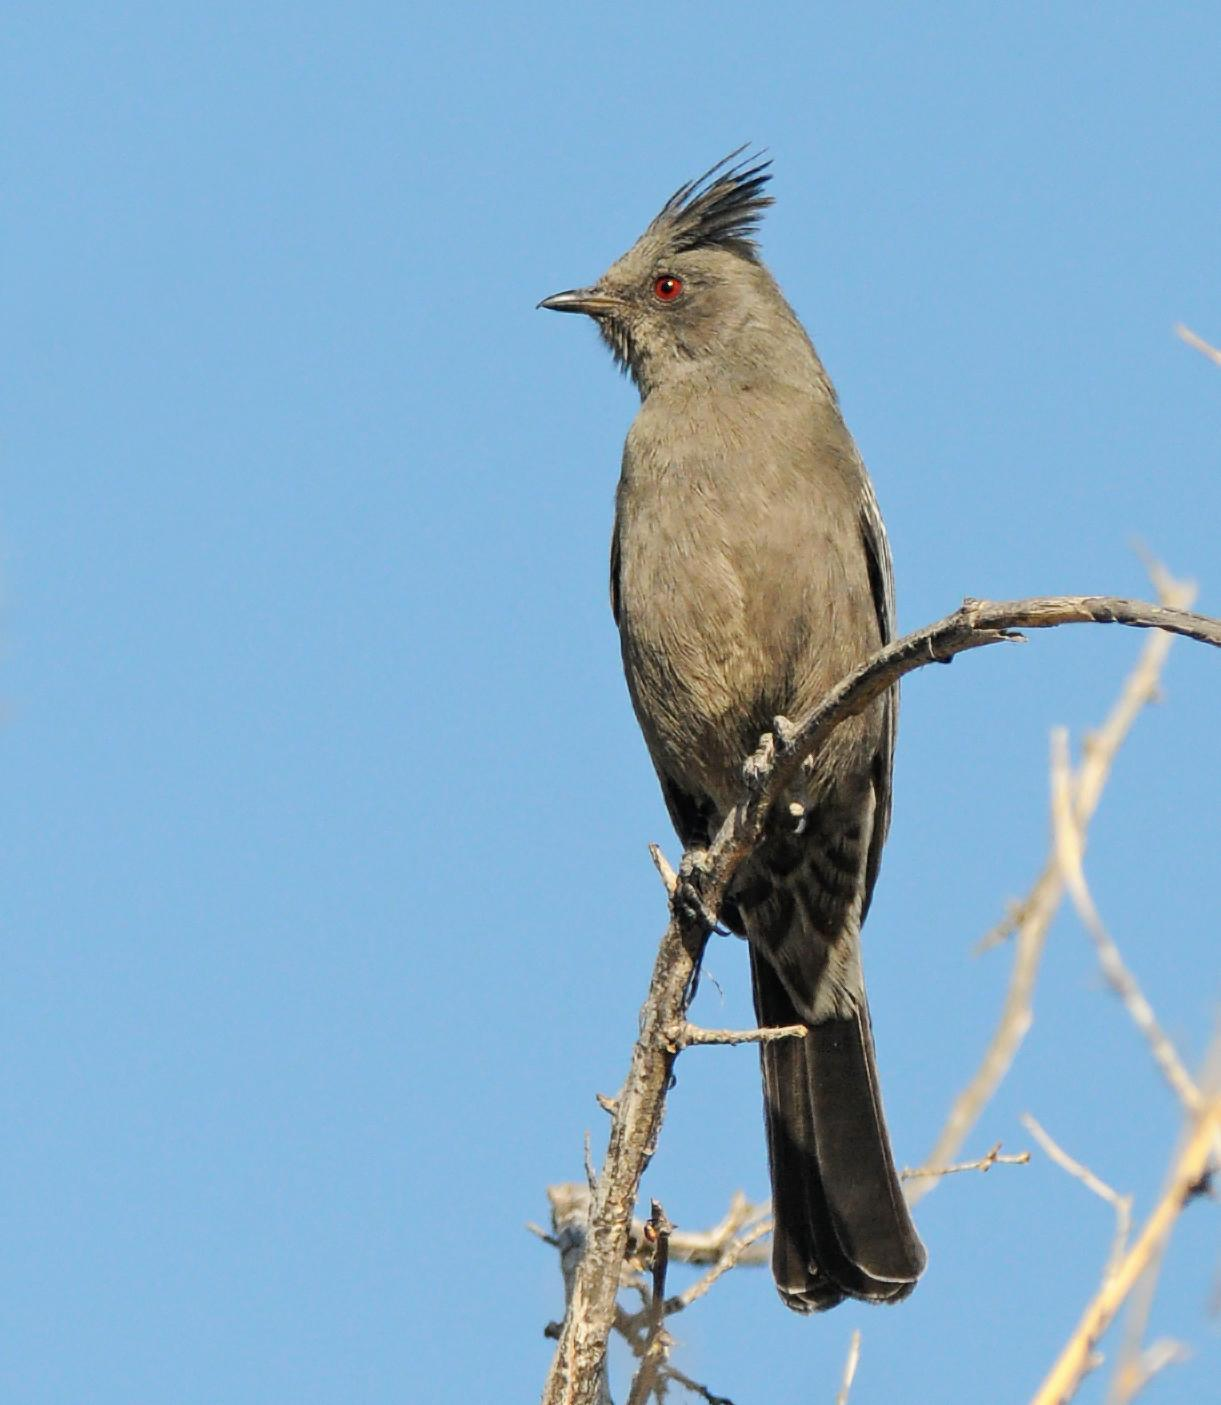 Phainopepla Photo by Steven Mlodinow